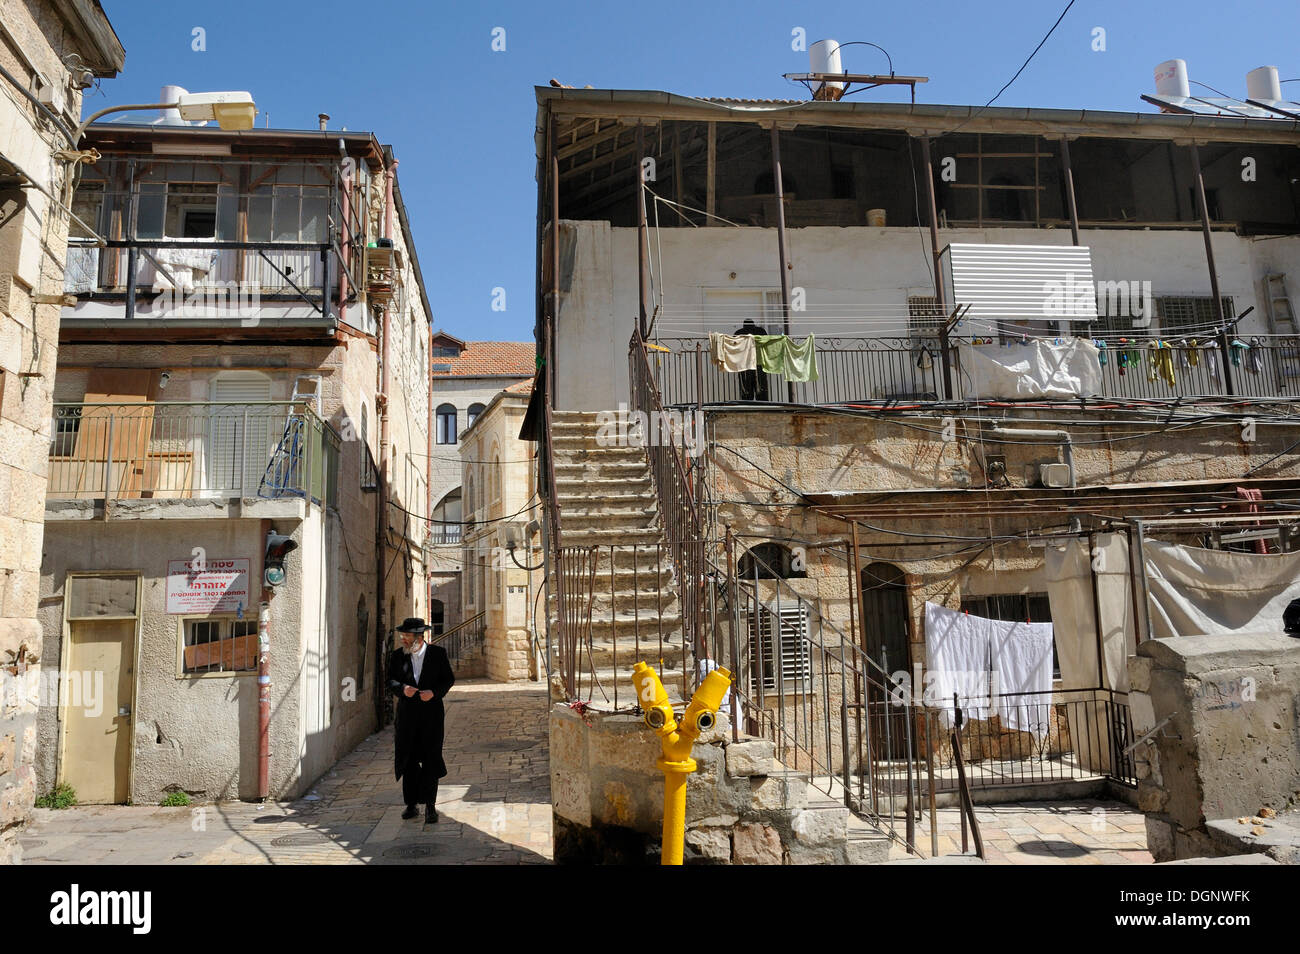 Ultra-Orthodox Jew with typical houses in the district of Me'a She'arim or Mea Shearim, Jerusalem, Israel, Middle East - Stock Image